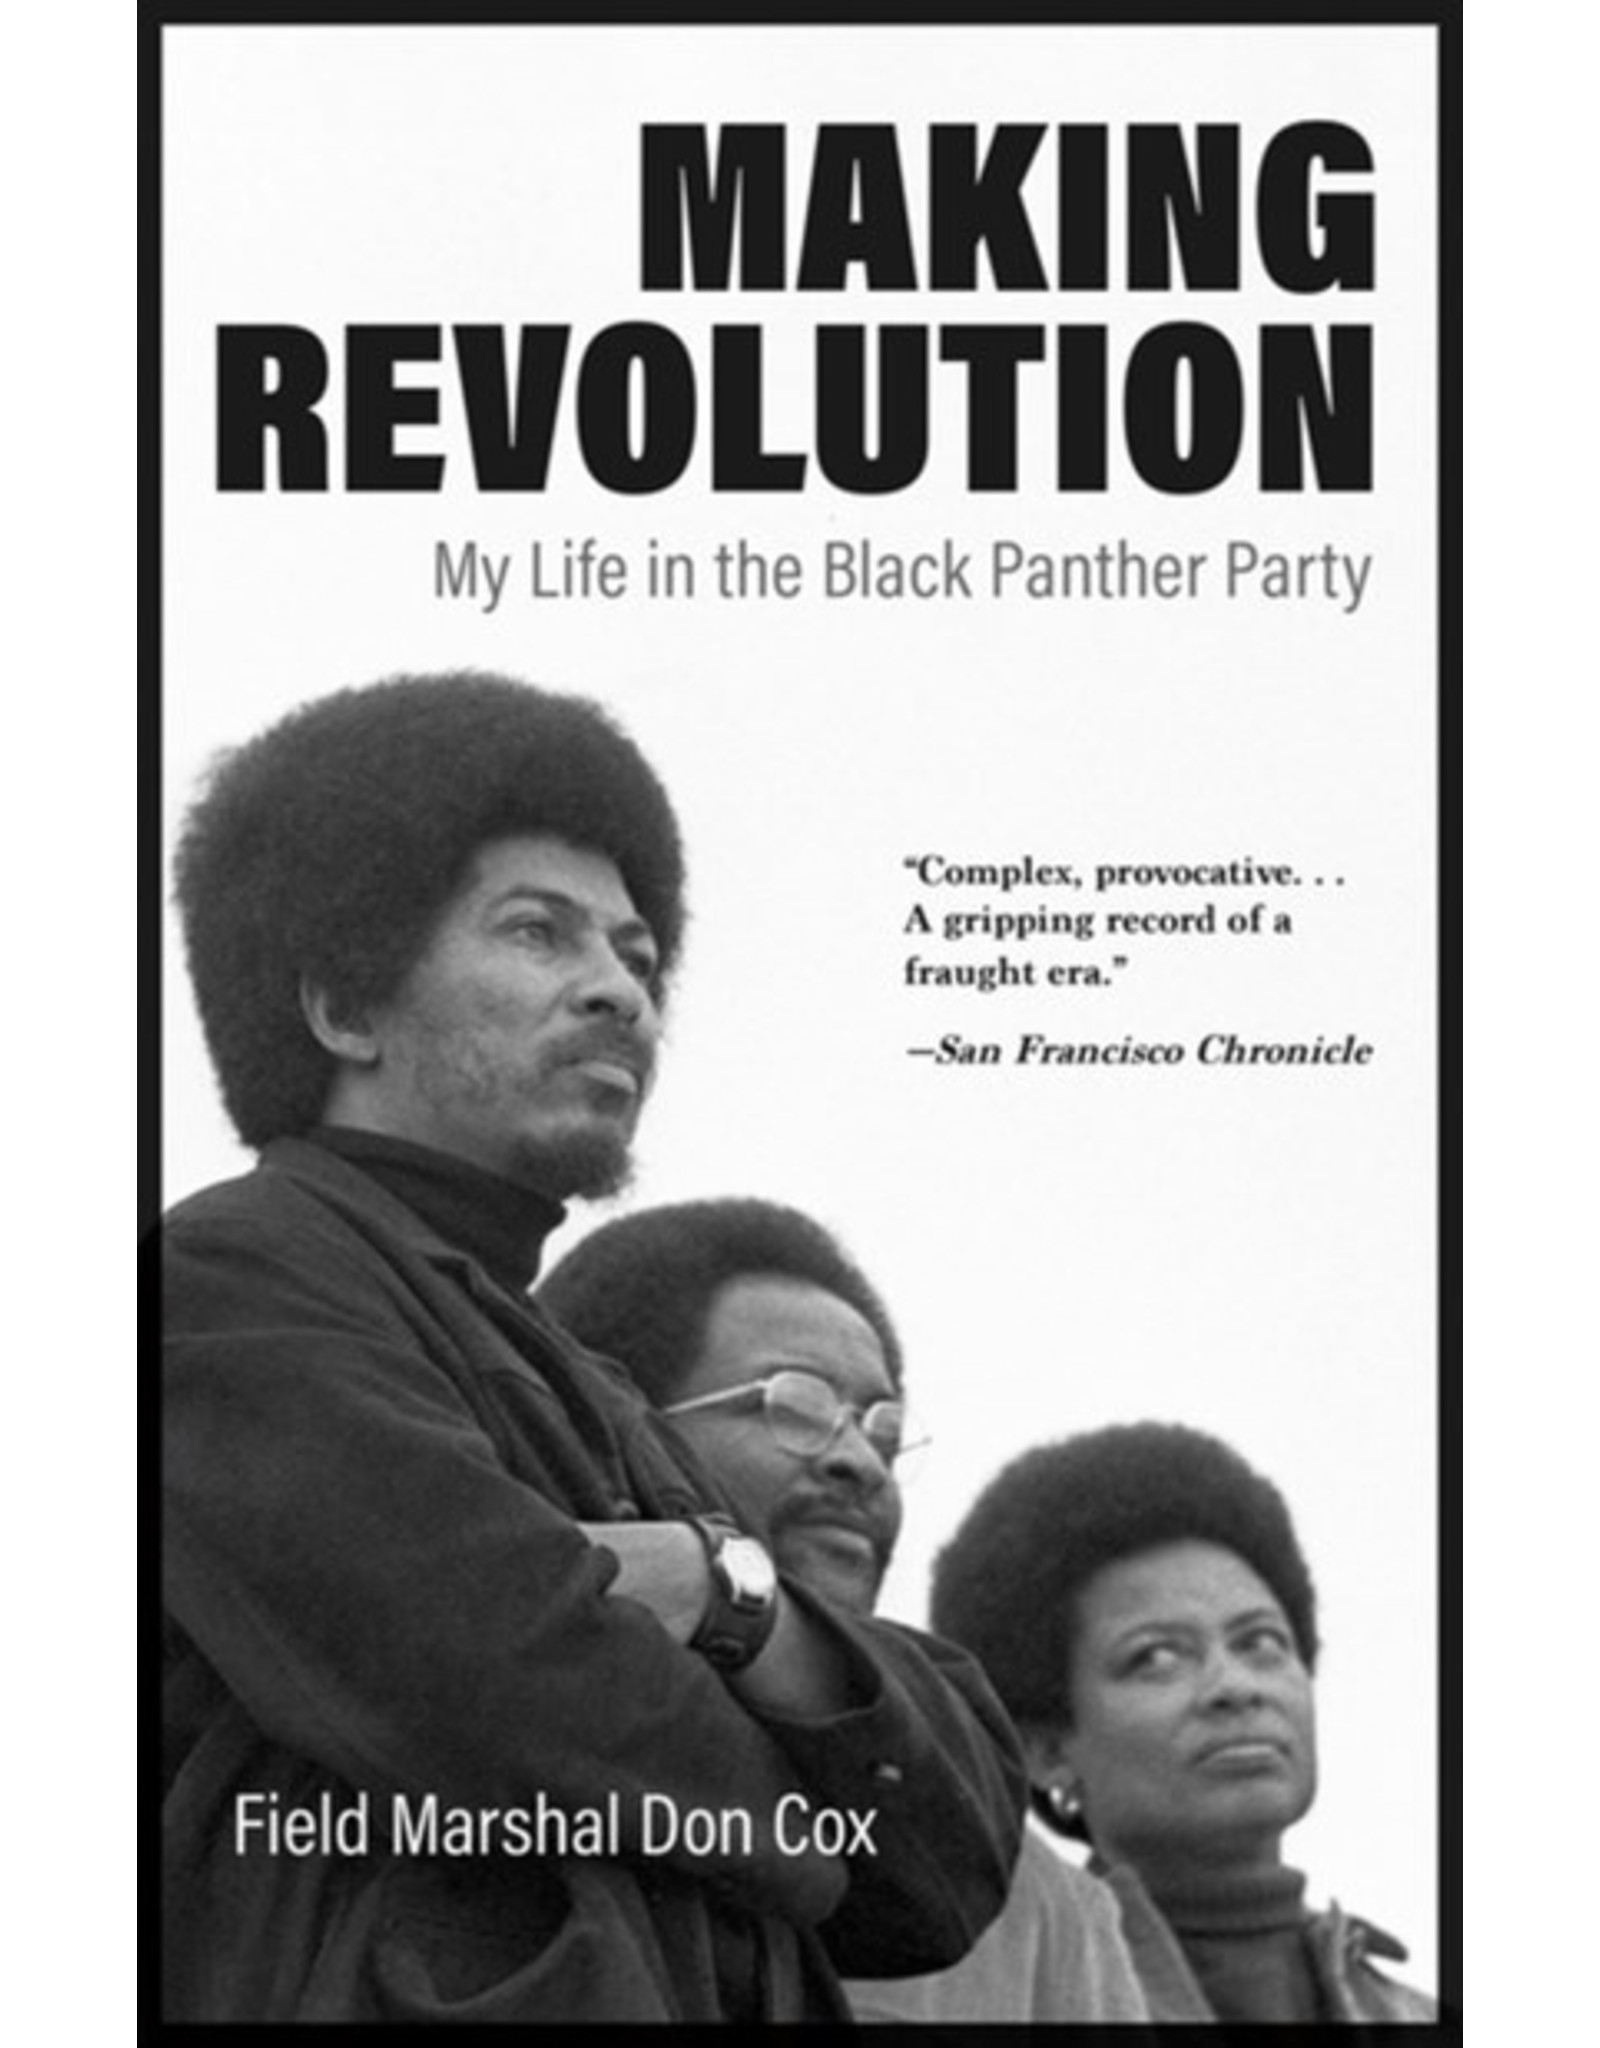 Books Making Revolution: My Life in the Black Panther Party  by Field Marshal Don Cox